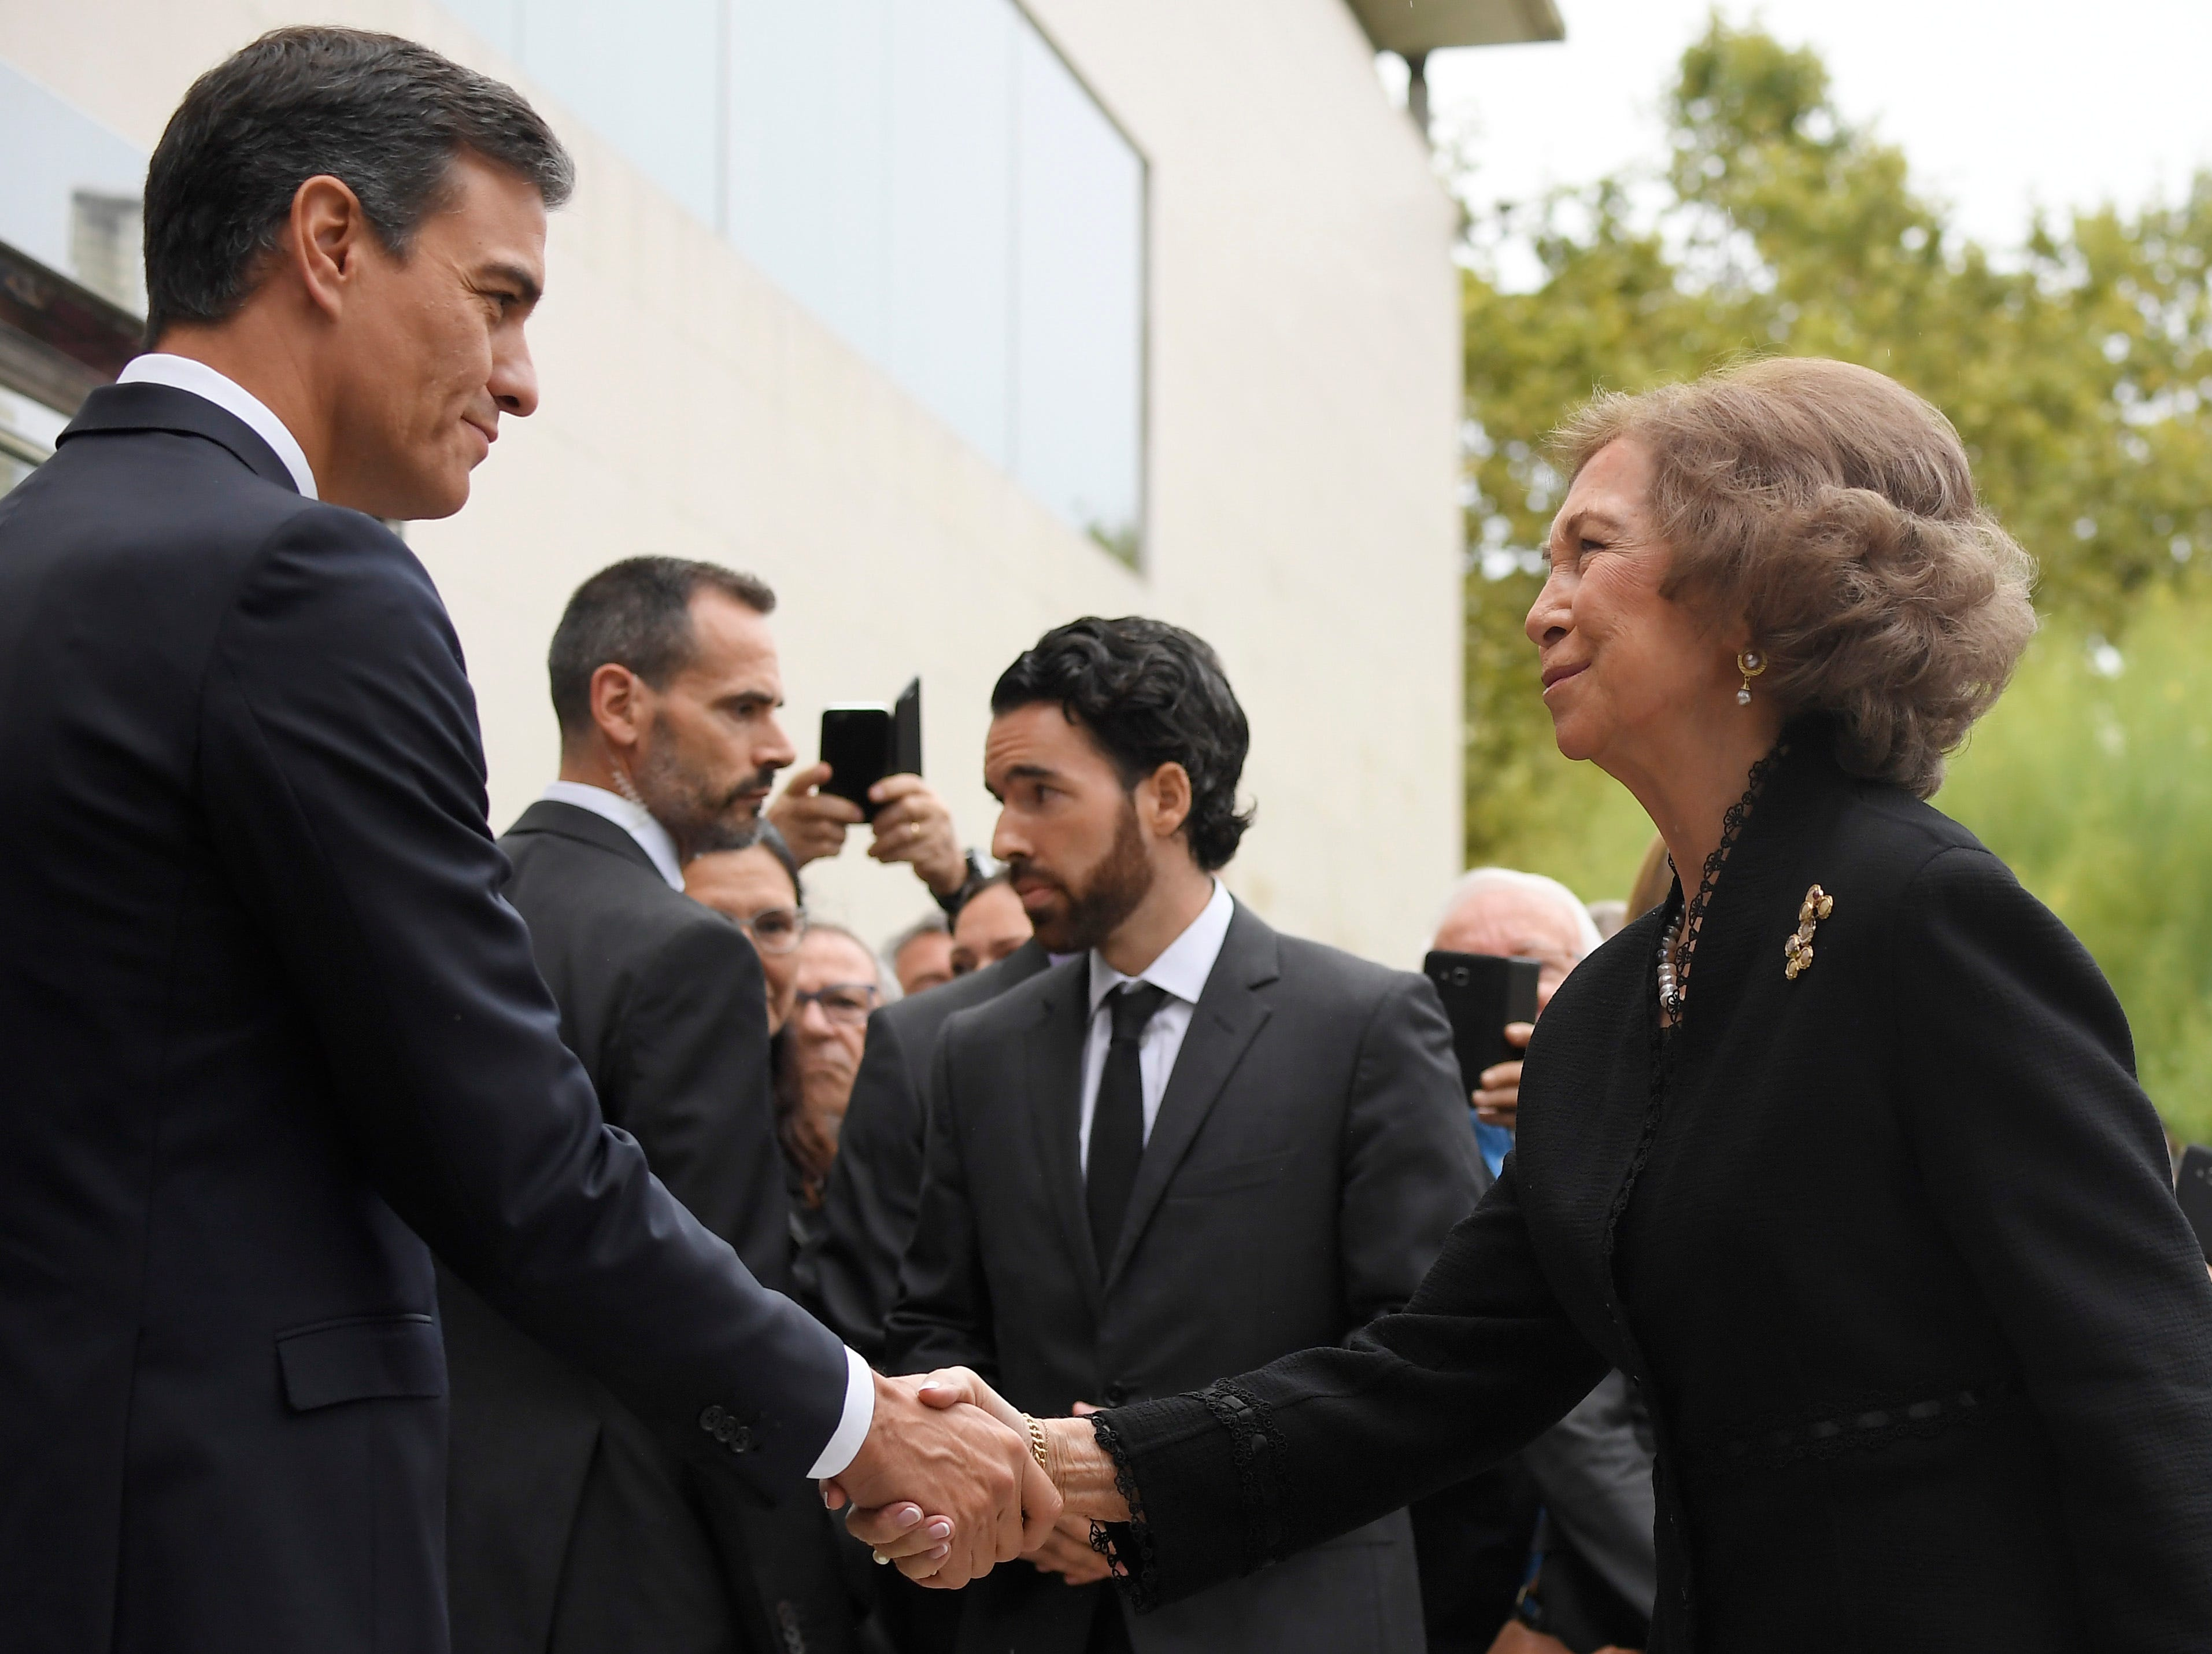 Spanish Prime Minister Pedro Sanchez shakes hands with former queen of Spain, Sofia, during the funeral for Spanish opera singer Montserrat Caballe in Barcelona on Oct. 8, 2018.